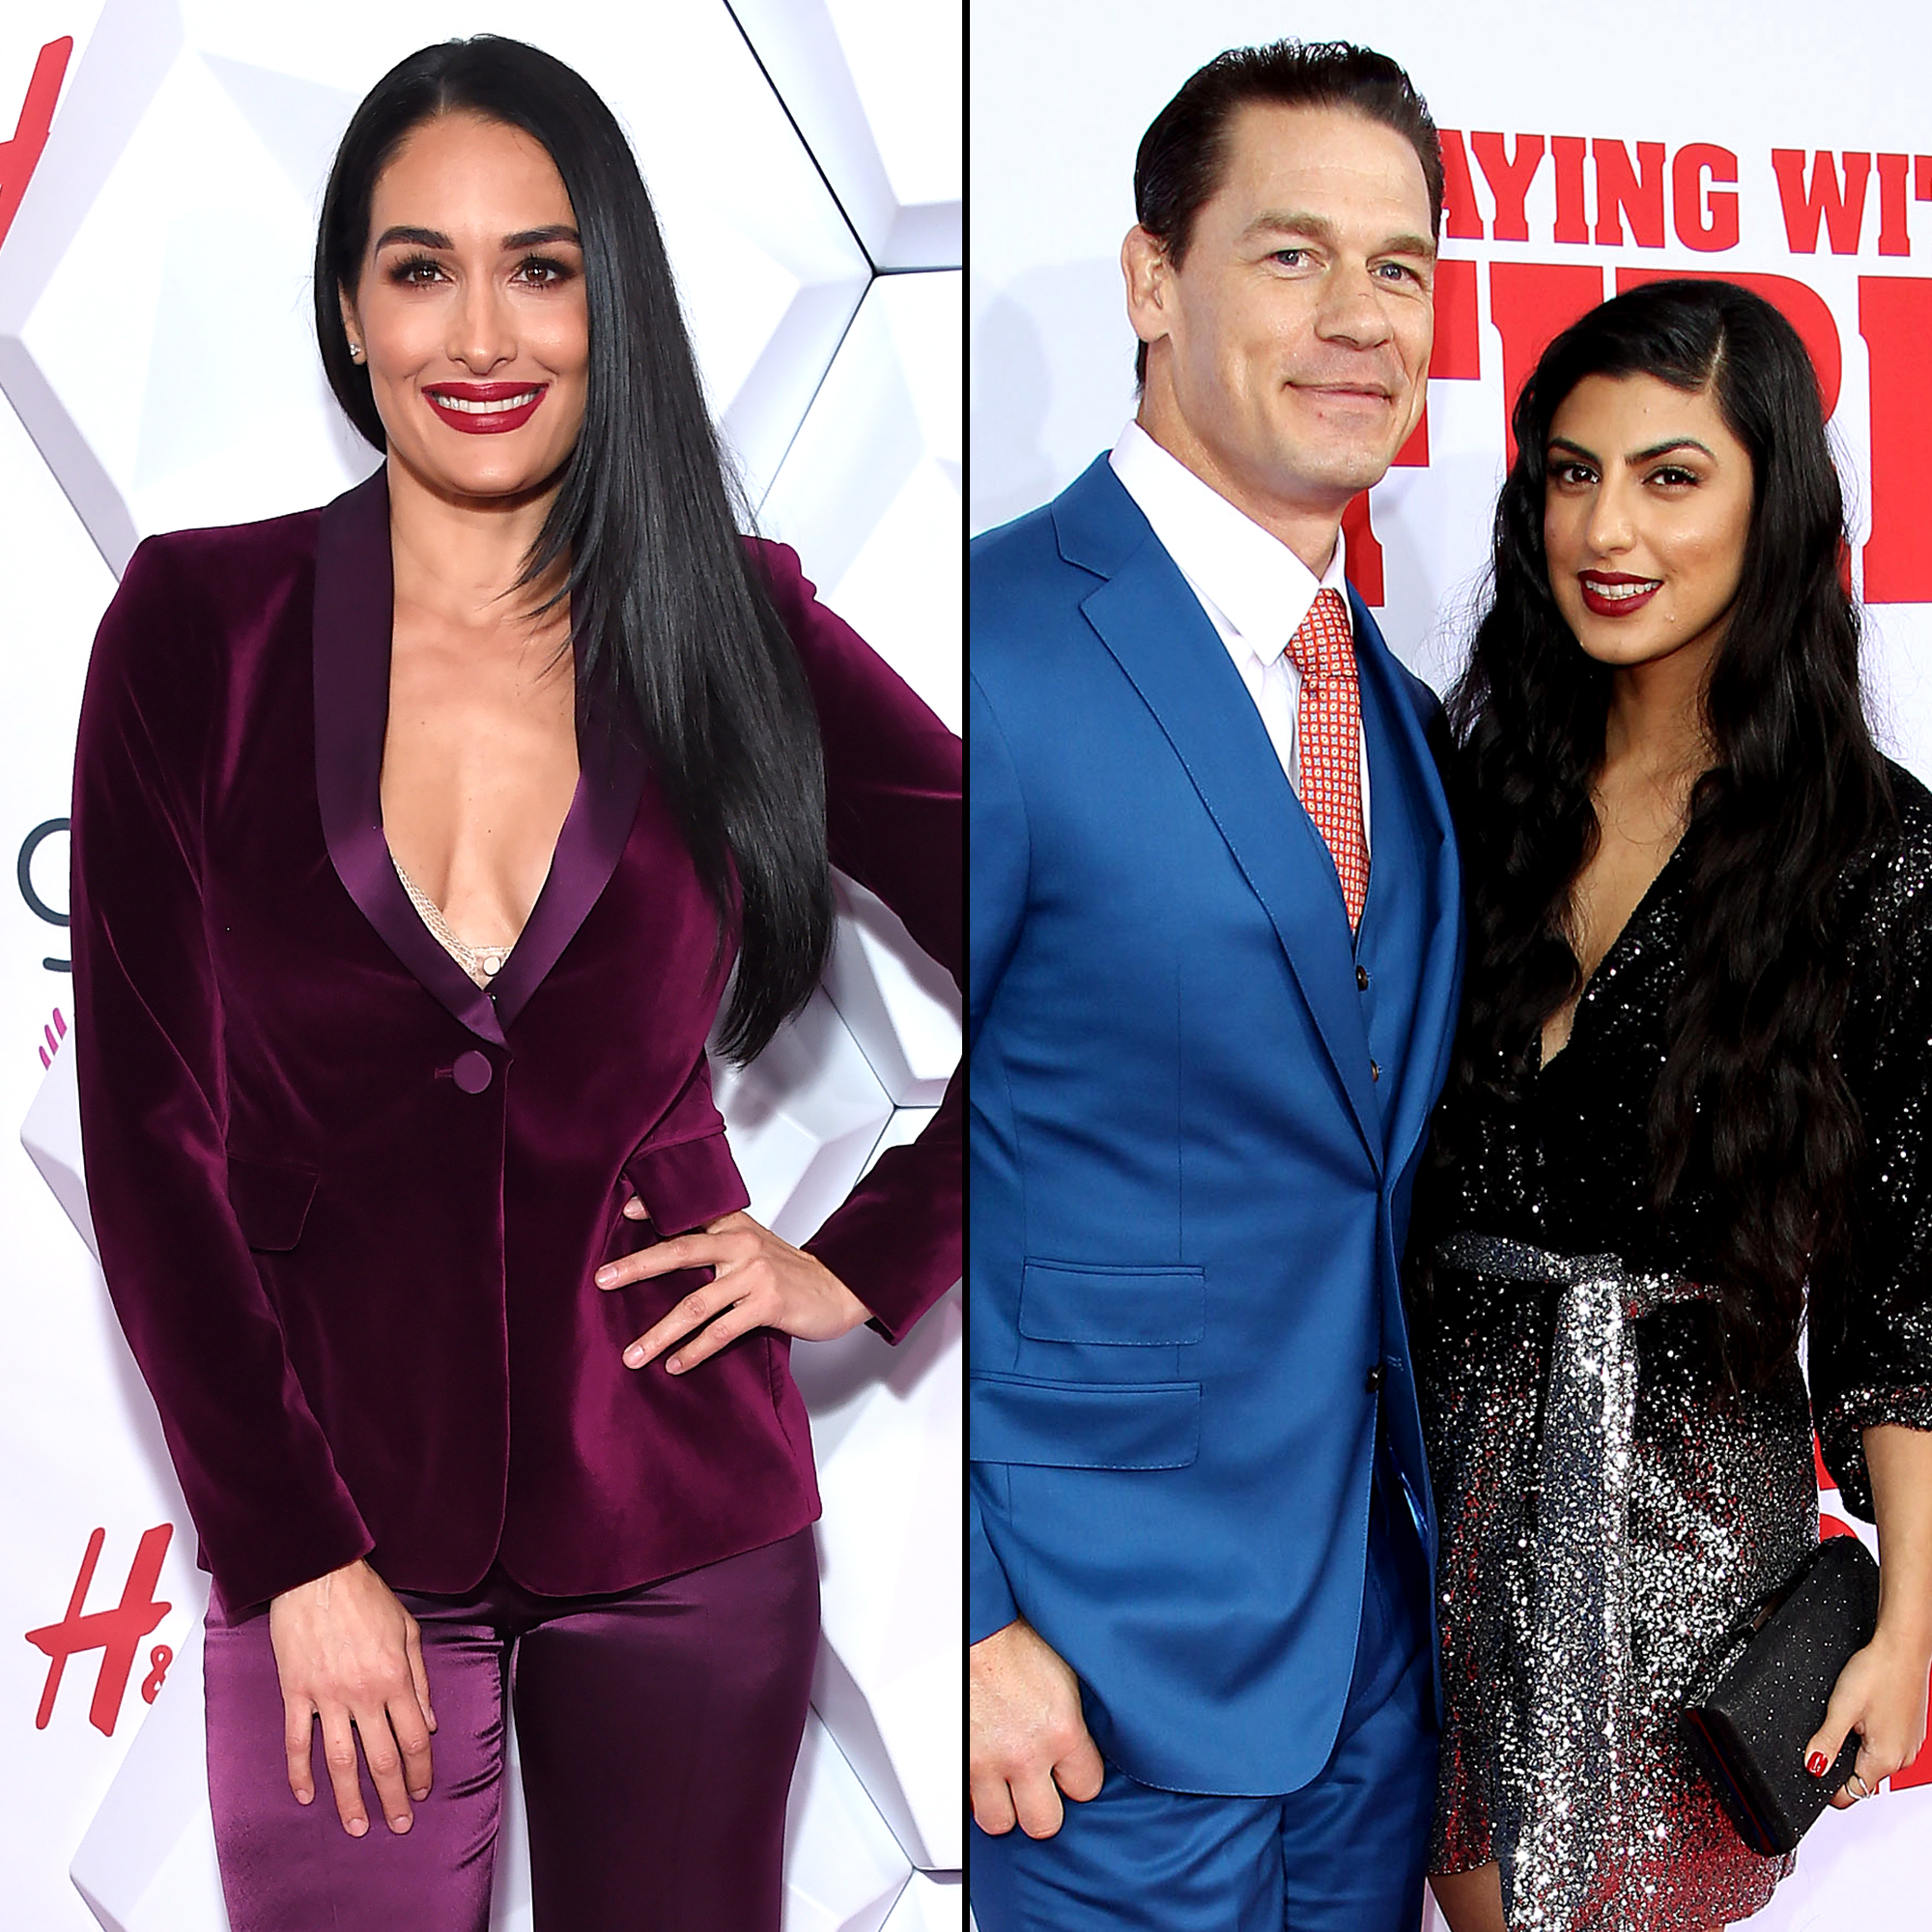 Nikki Bella S Quotes On John Cena S Relationship With Shay Shariatzadeh Here's everything we know about shay shariatzadeh. relationship with shay shariatzadeh